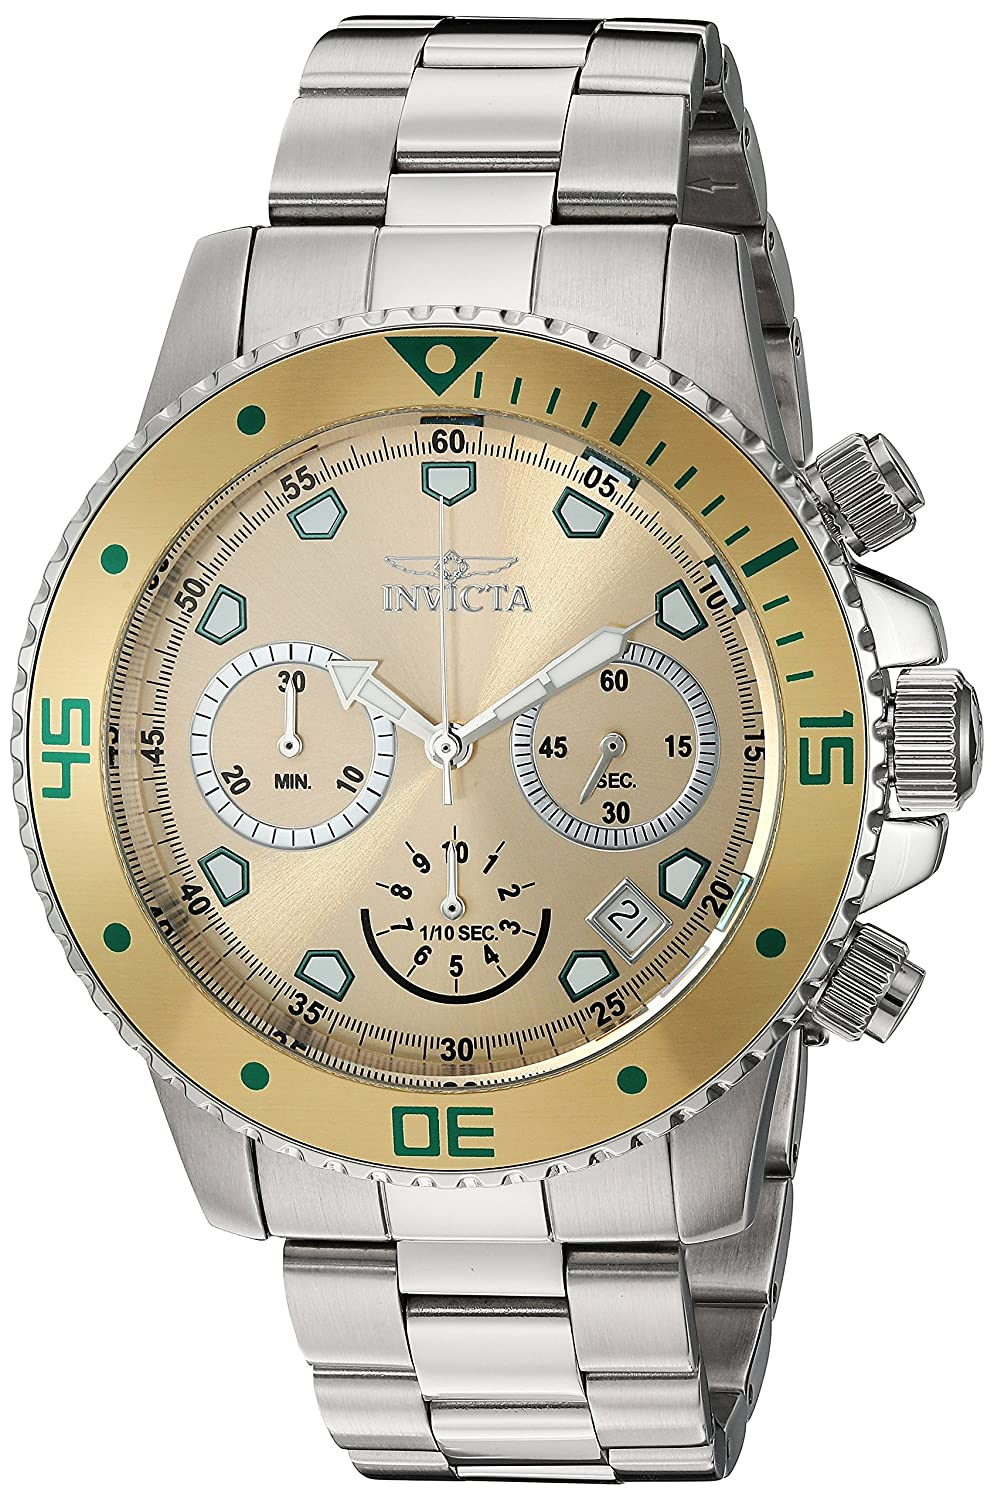 84726b82a37 Amazon.com  Invicta Men s Pro Diver Chrono Stainless Steel Champagne Dial  Watch (21888)  Watches